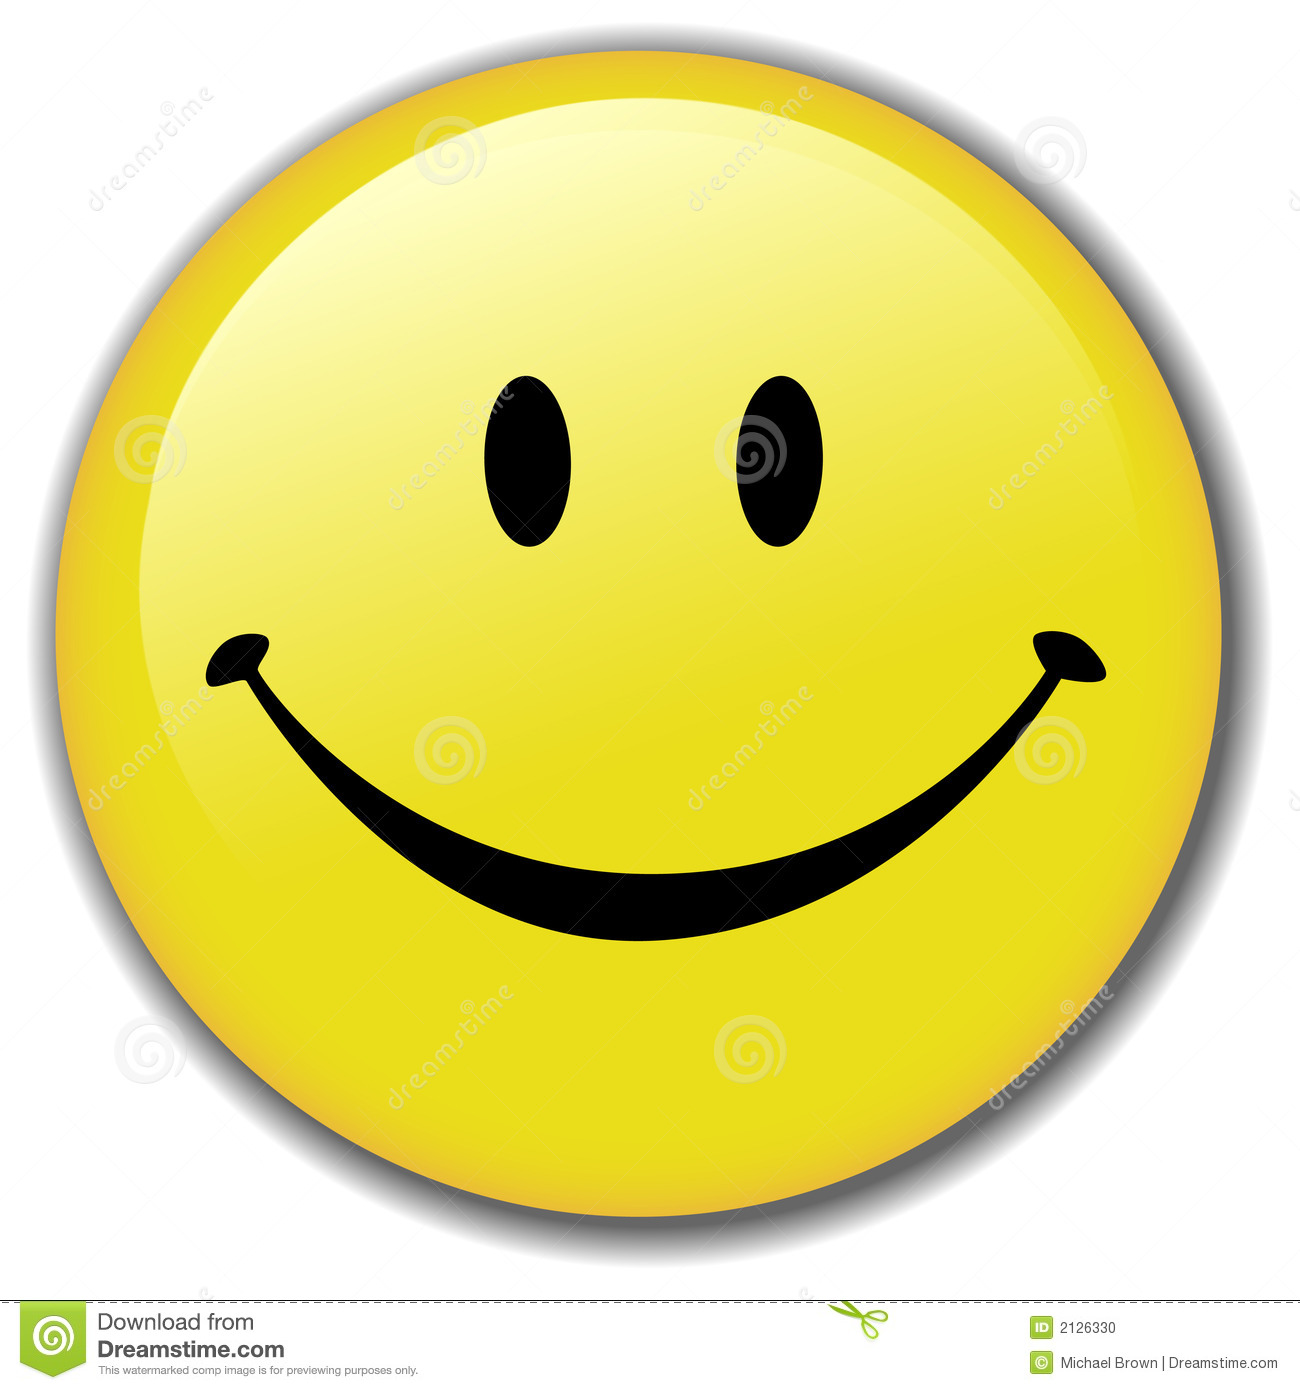 Happy Smiley Face Button, or Badge, or Icon. Have a nice day! Clean